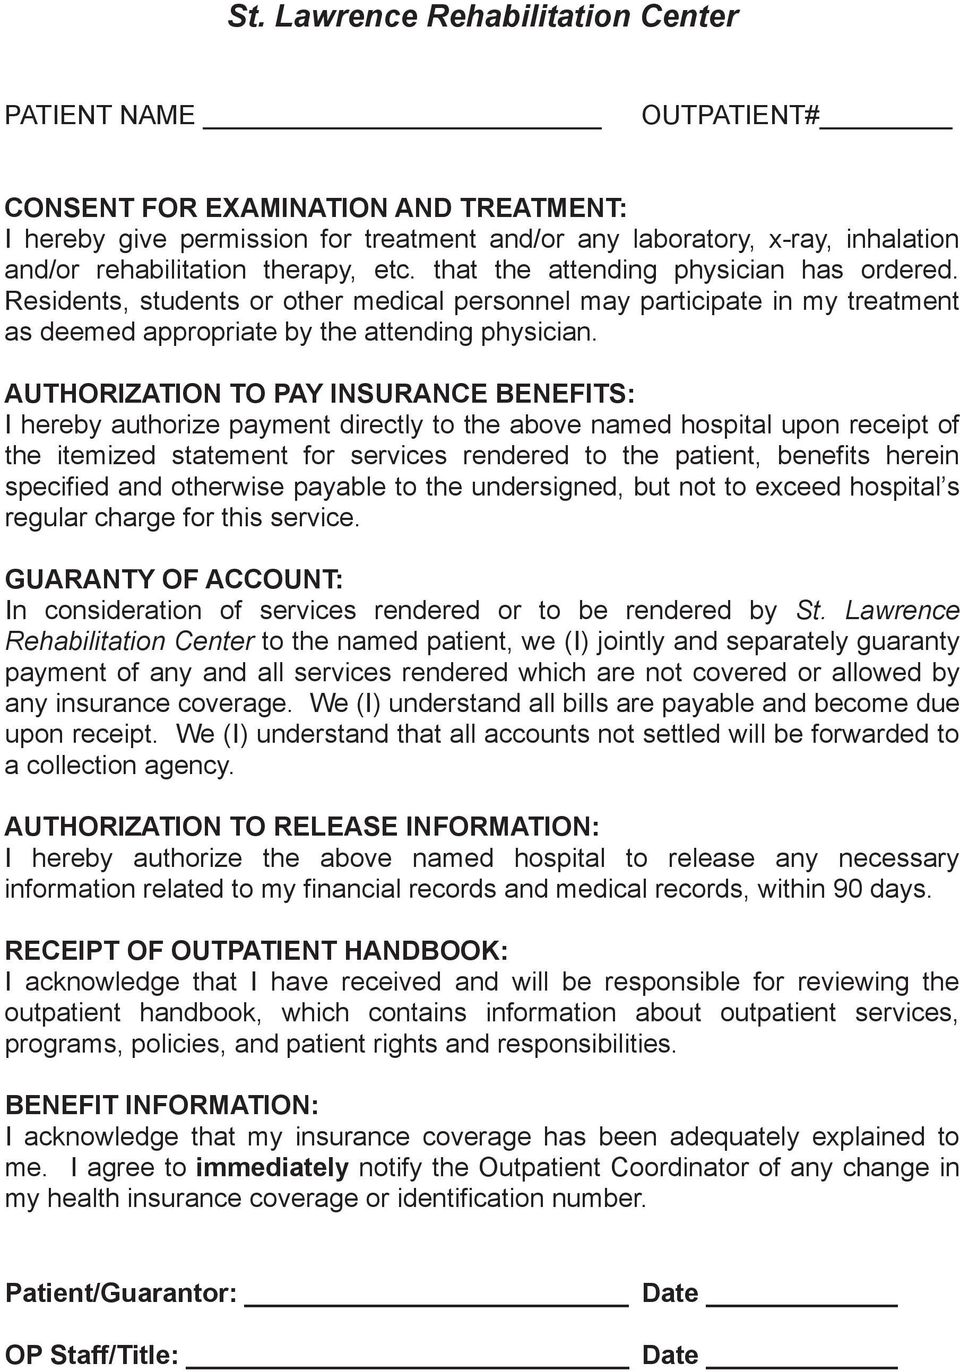 AUTHORIZATION TO PAY INSURANCE BENEFITS: I hereby authorize payment directly to the above named hospital upon receipt of the itemized statement for services rendered to the patient, benefits herein